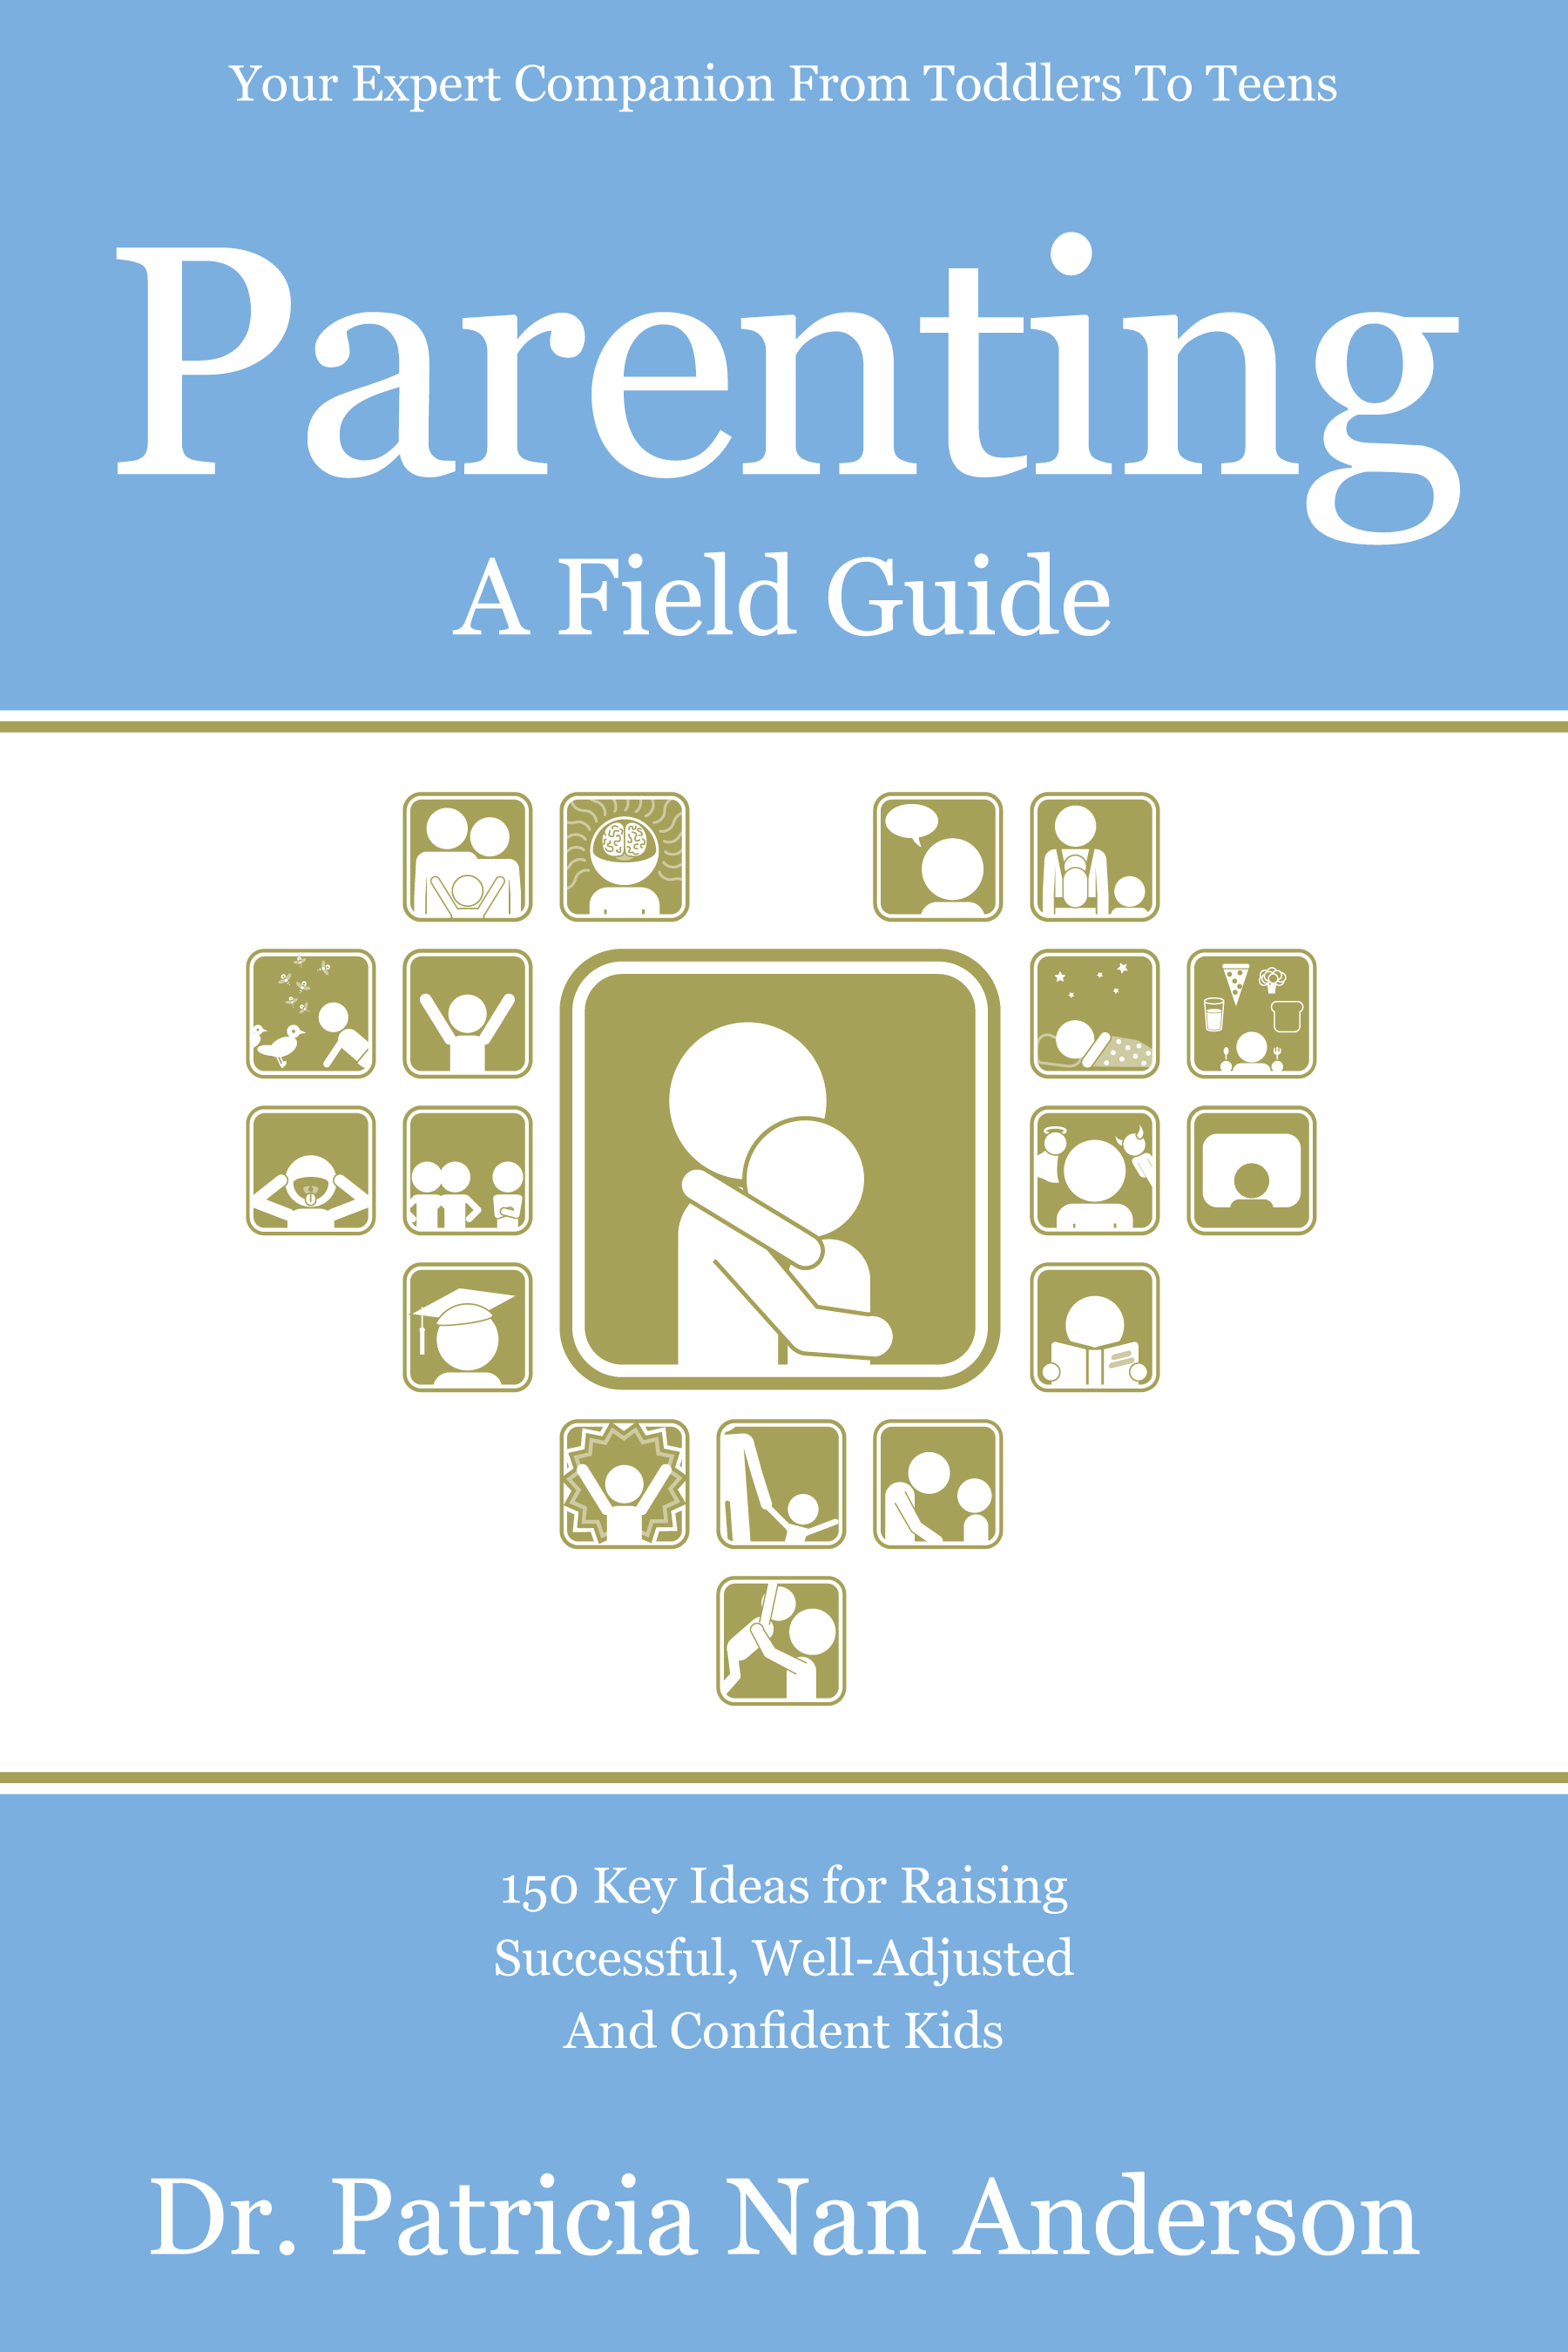 Parenting: A Field Guide